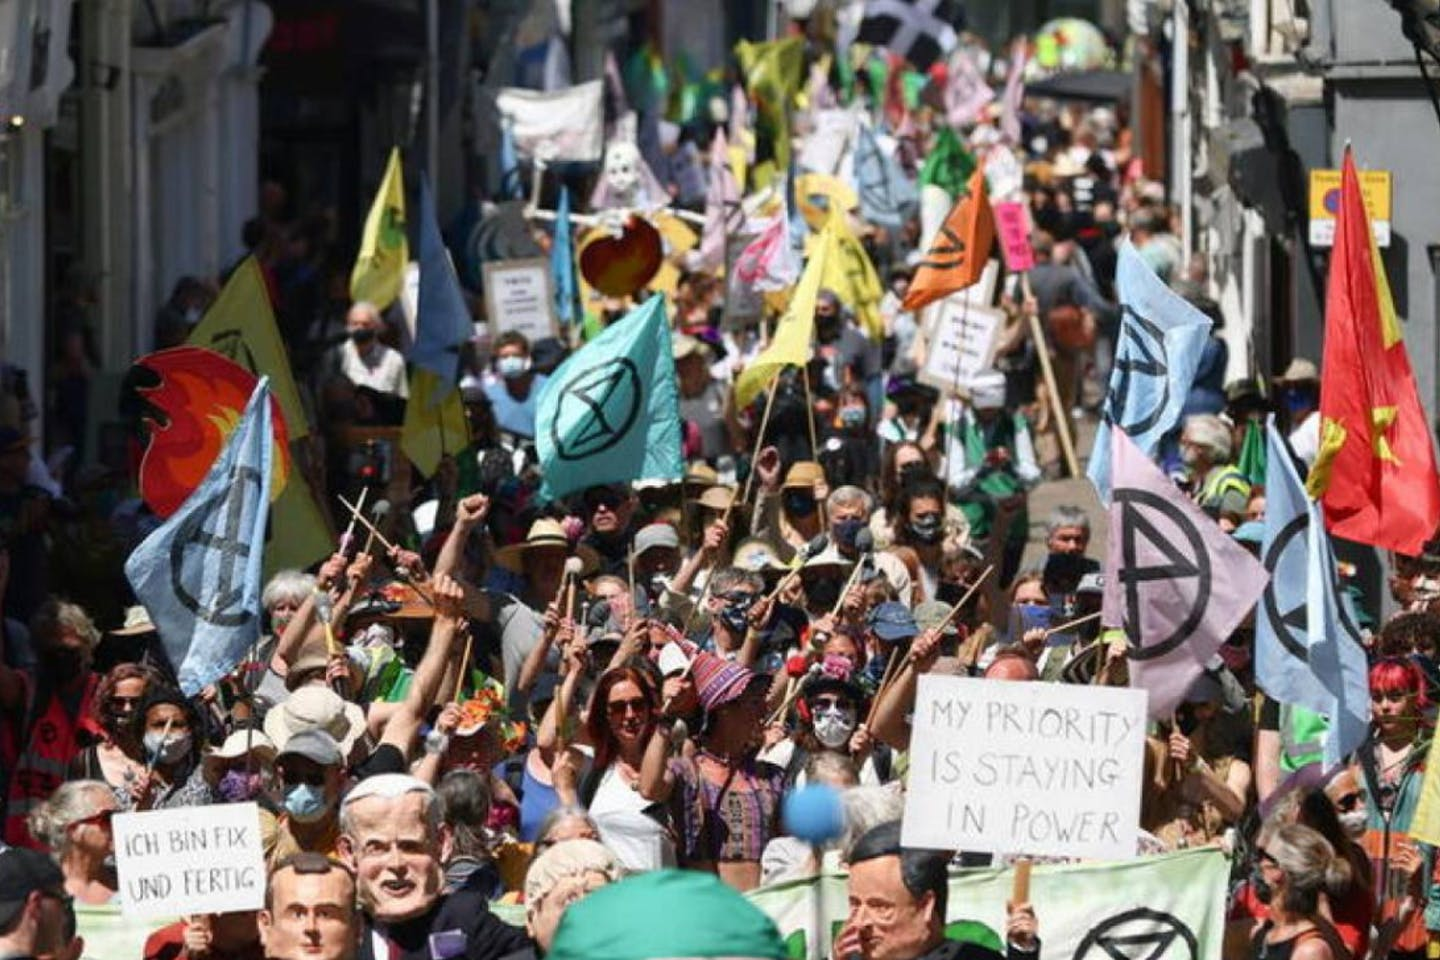 Fresh wave of climate protests to target gas ahead of COP26 summit